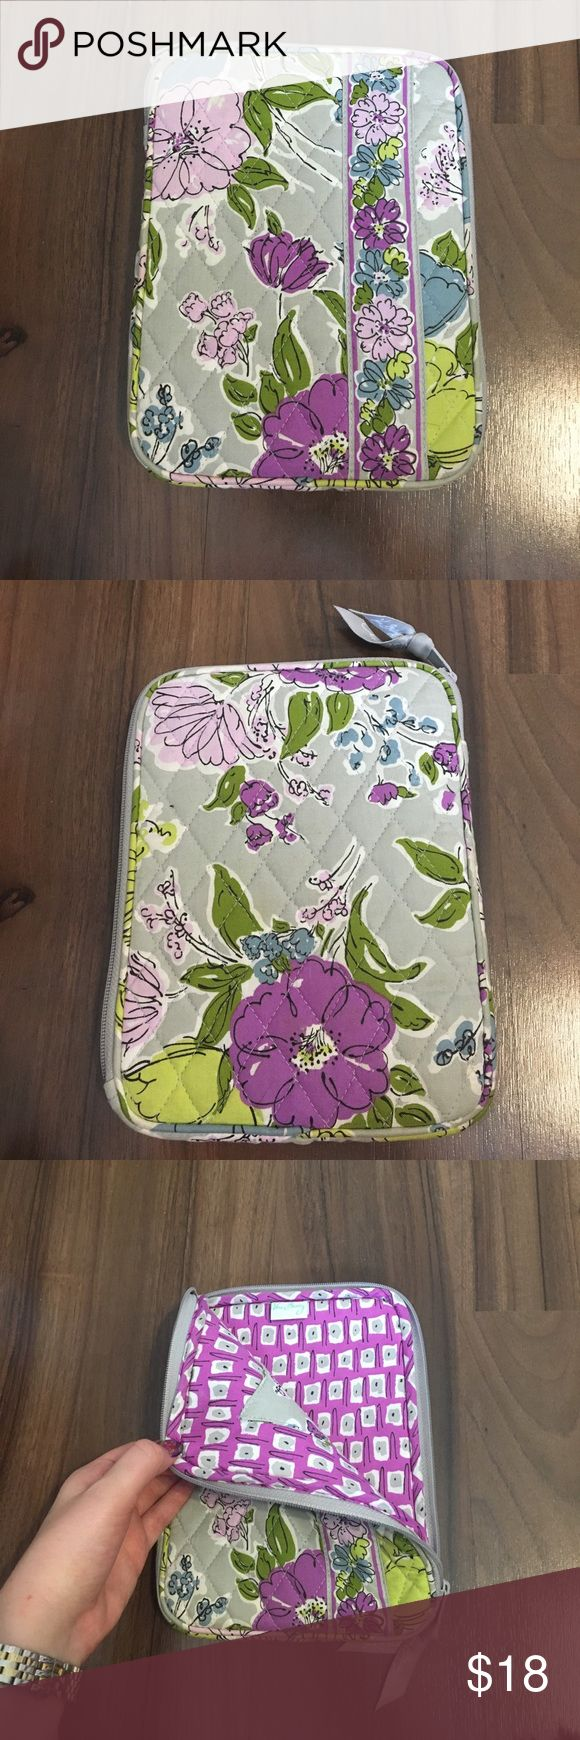 """Vera Bradley Watercolor Tablet/Kindle/Nook Case I am selling this gently used Vera Bradley tablet case! Dimensions are 6.5"""" x 9"""" Comes in the pattern Watercolor. Reasonable offers made through the offer button are always welcomed! Vera Bradley Bags Laptop Bags"""